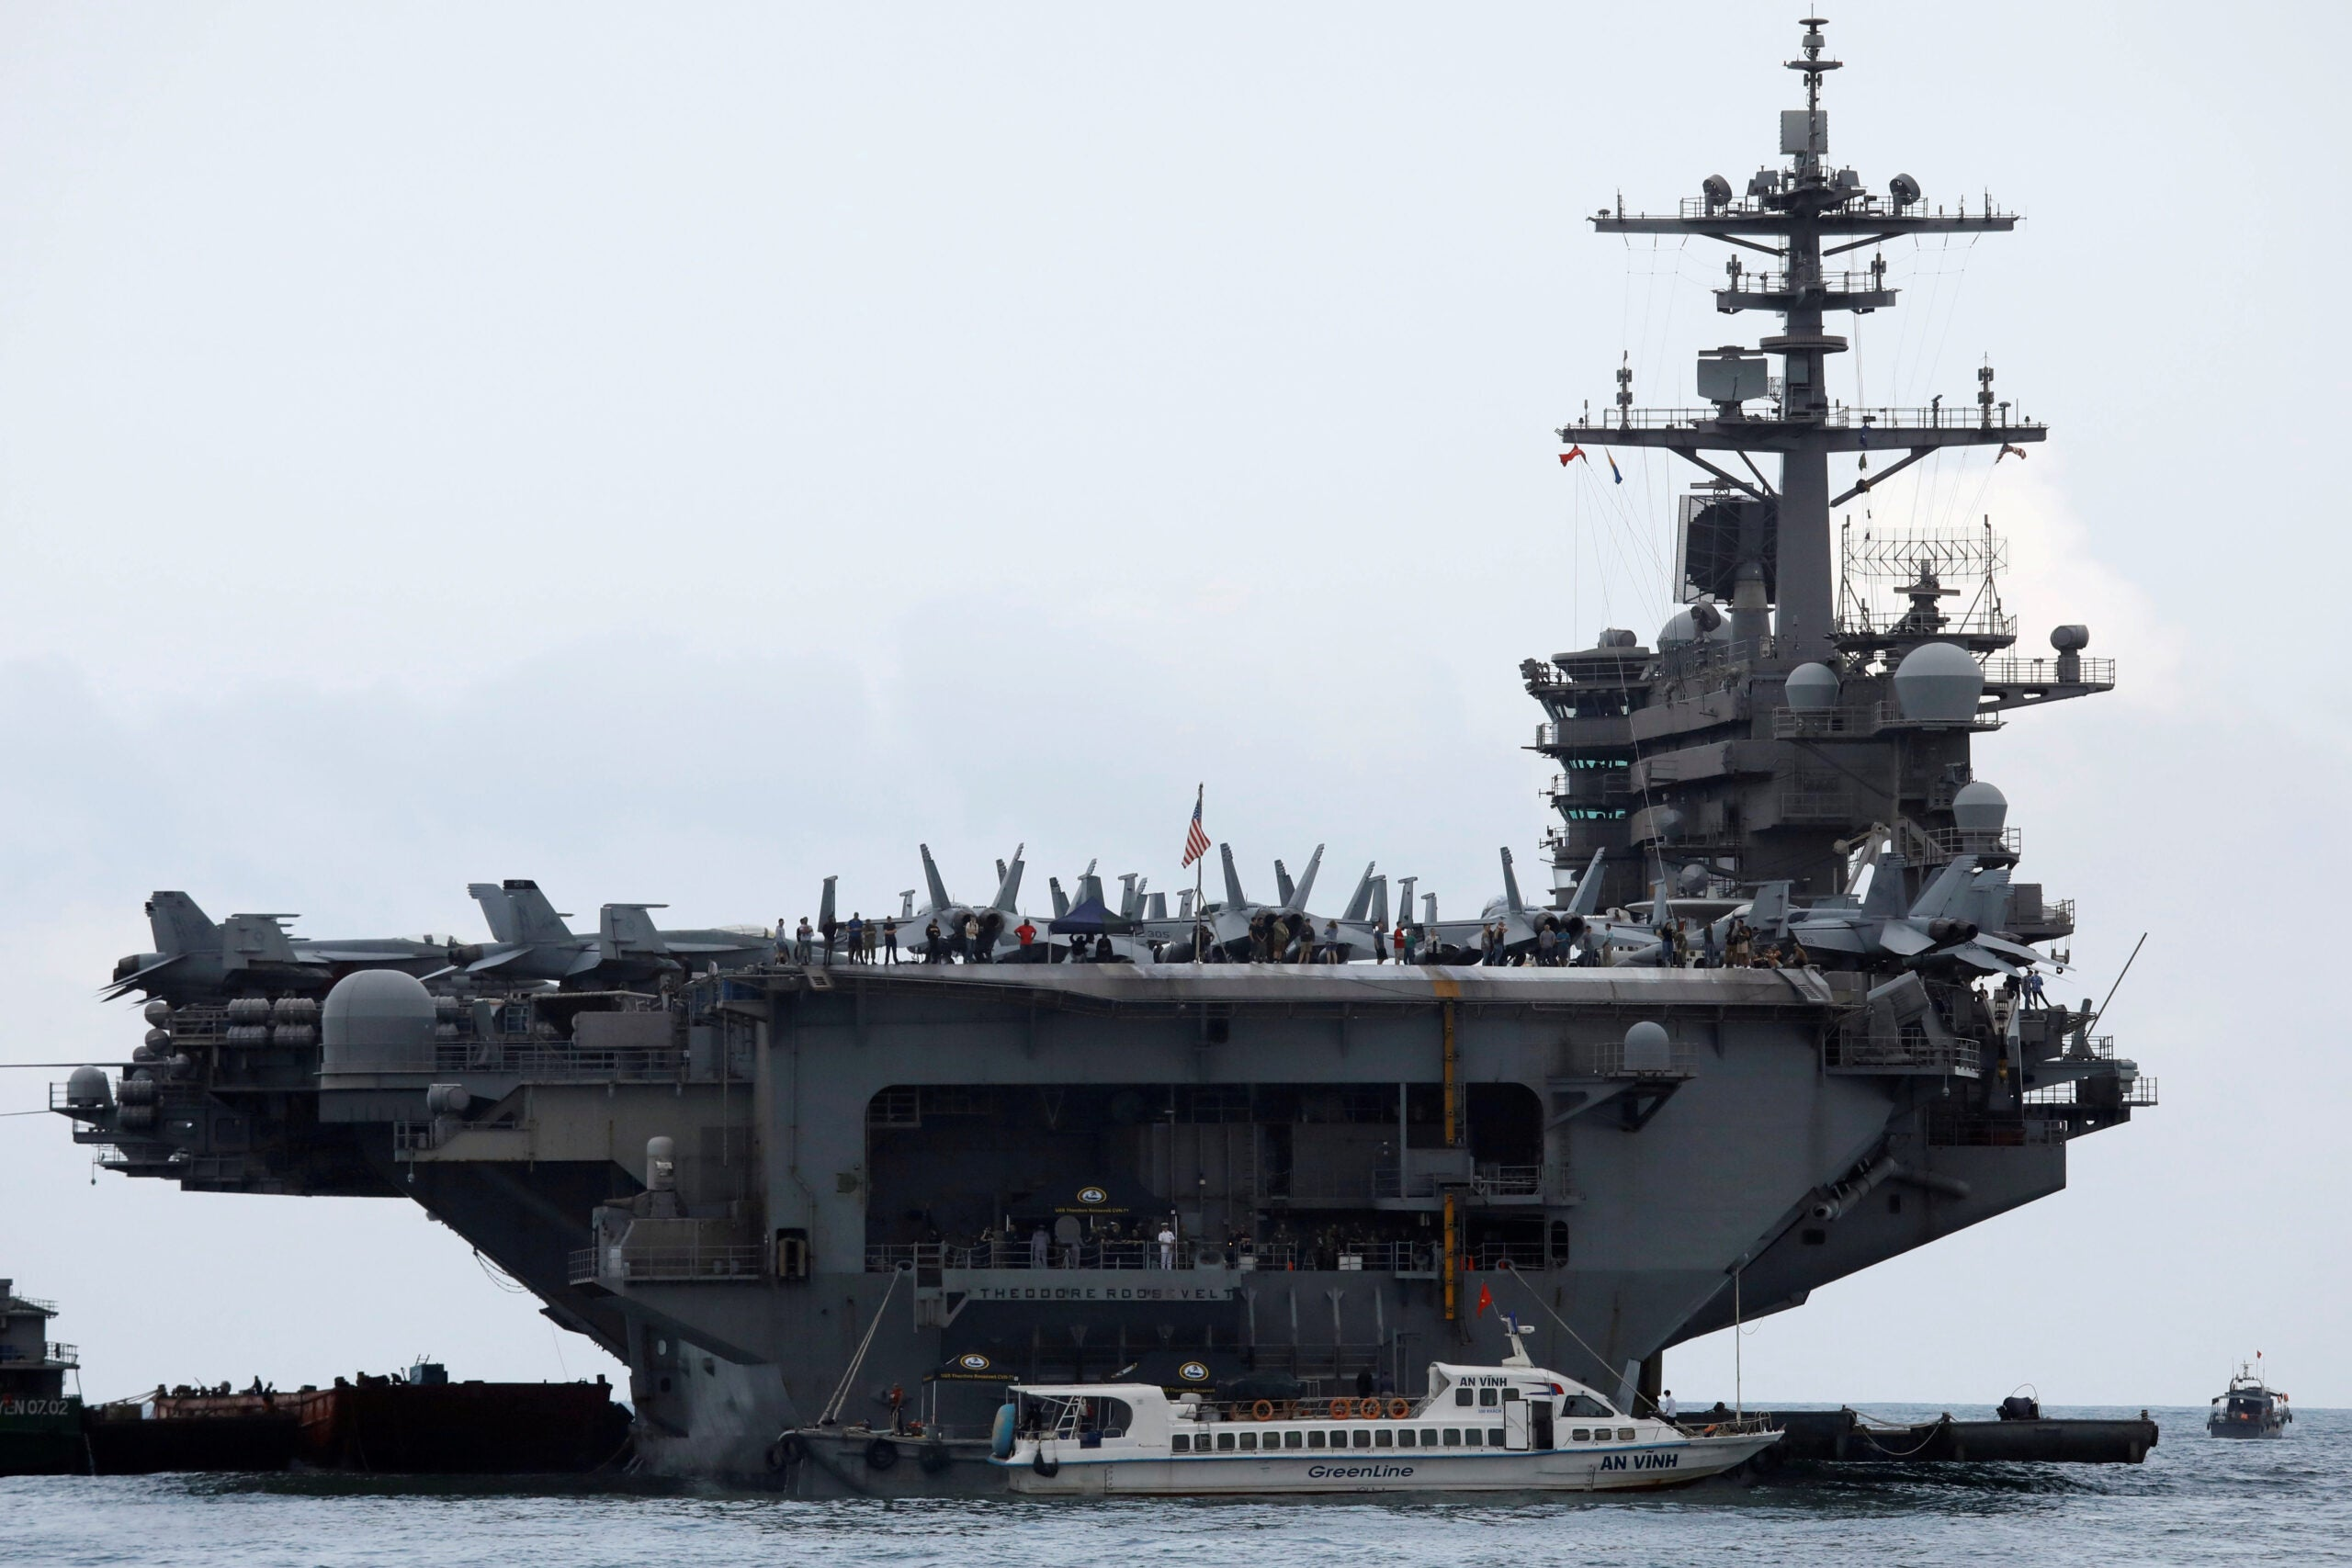 A USS Theodore Roosevelt sailor has died of COVID-19